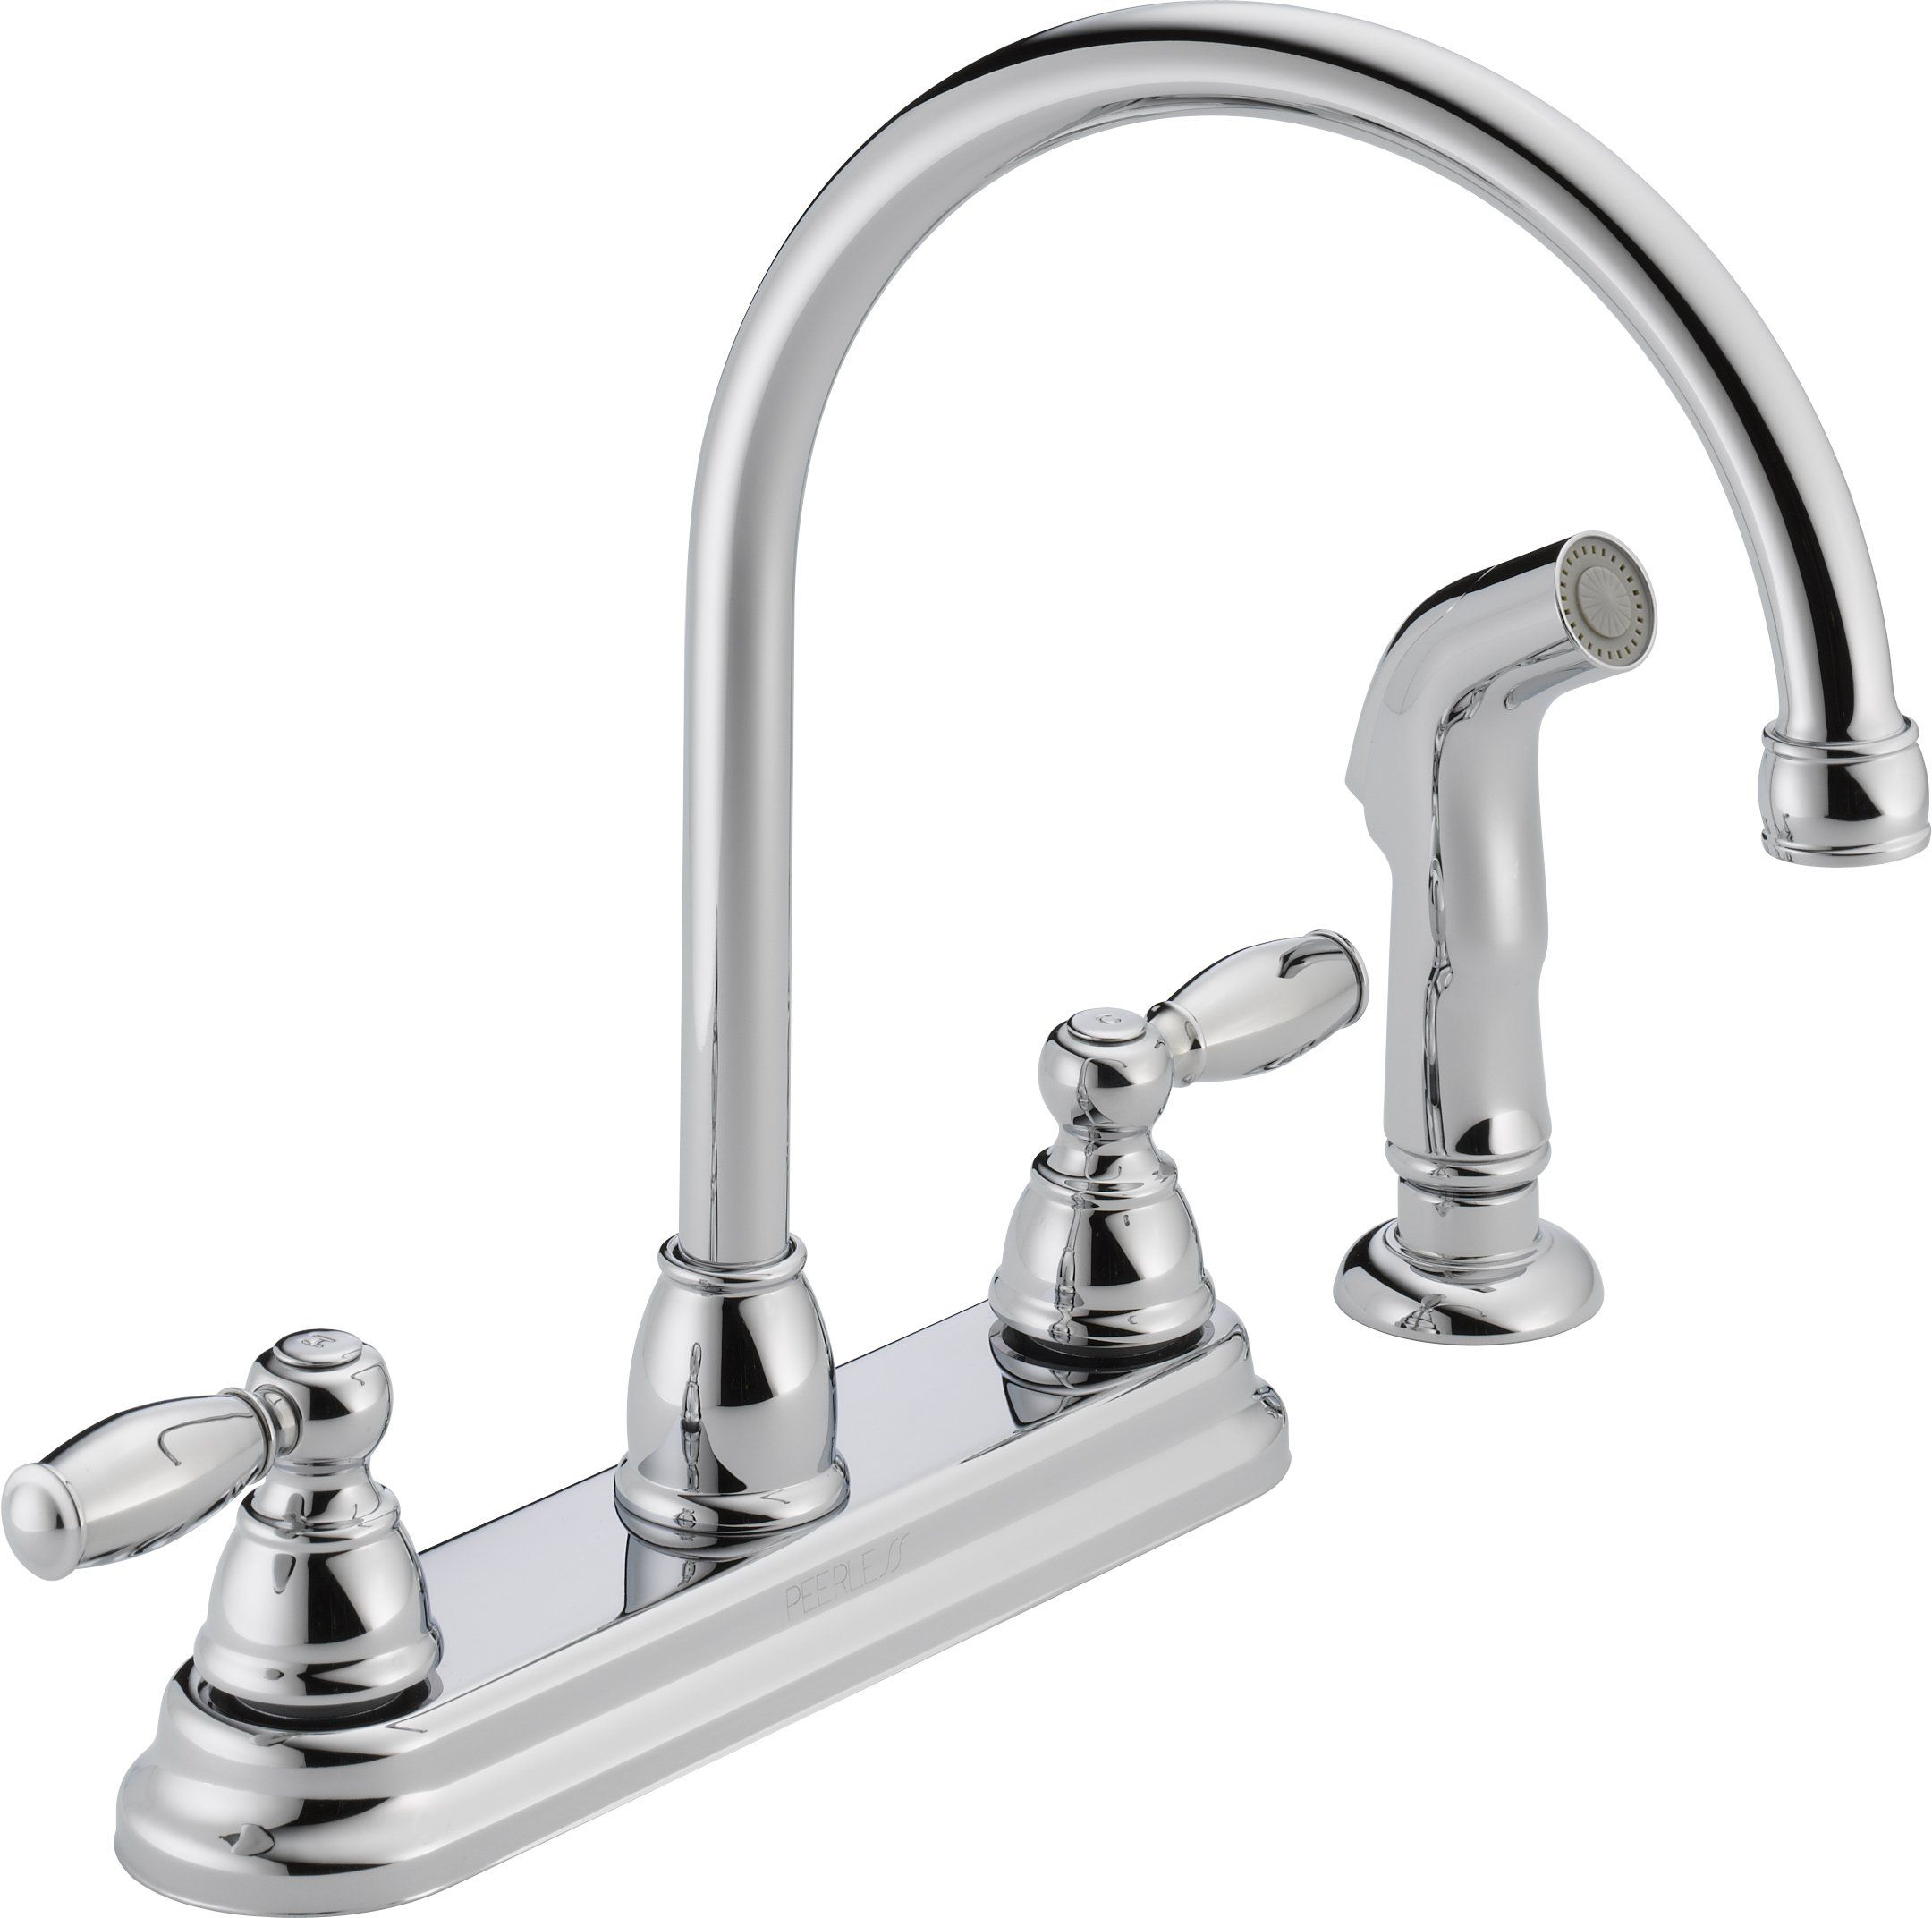 Peerless P299575lf Apex Two Handle Kitchen Faucet Chrome Touch